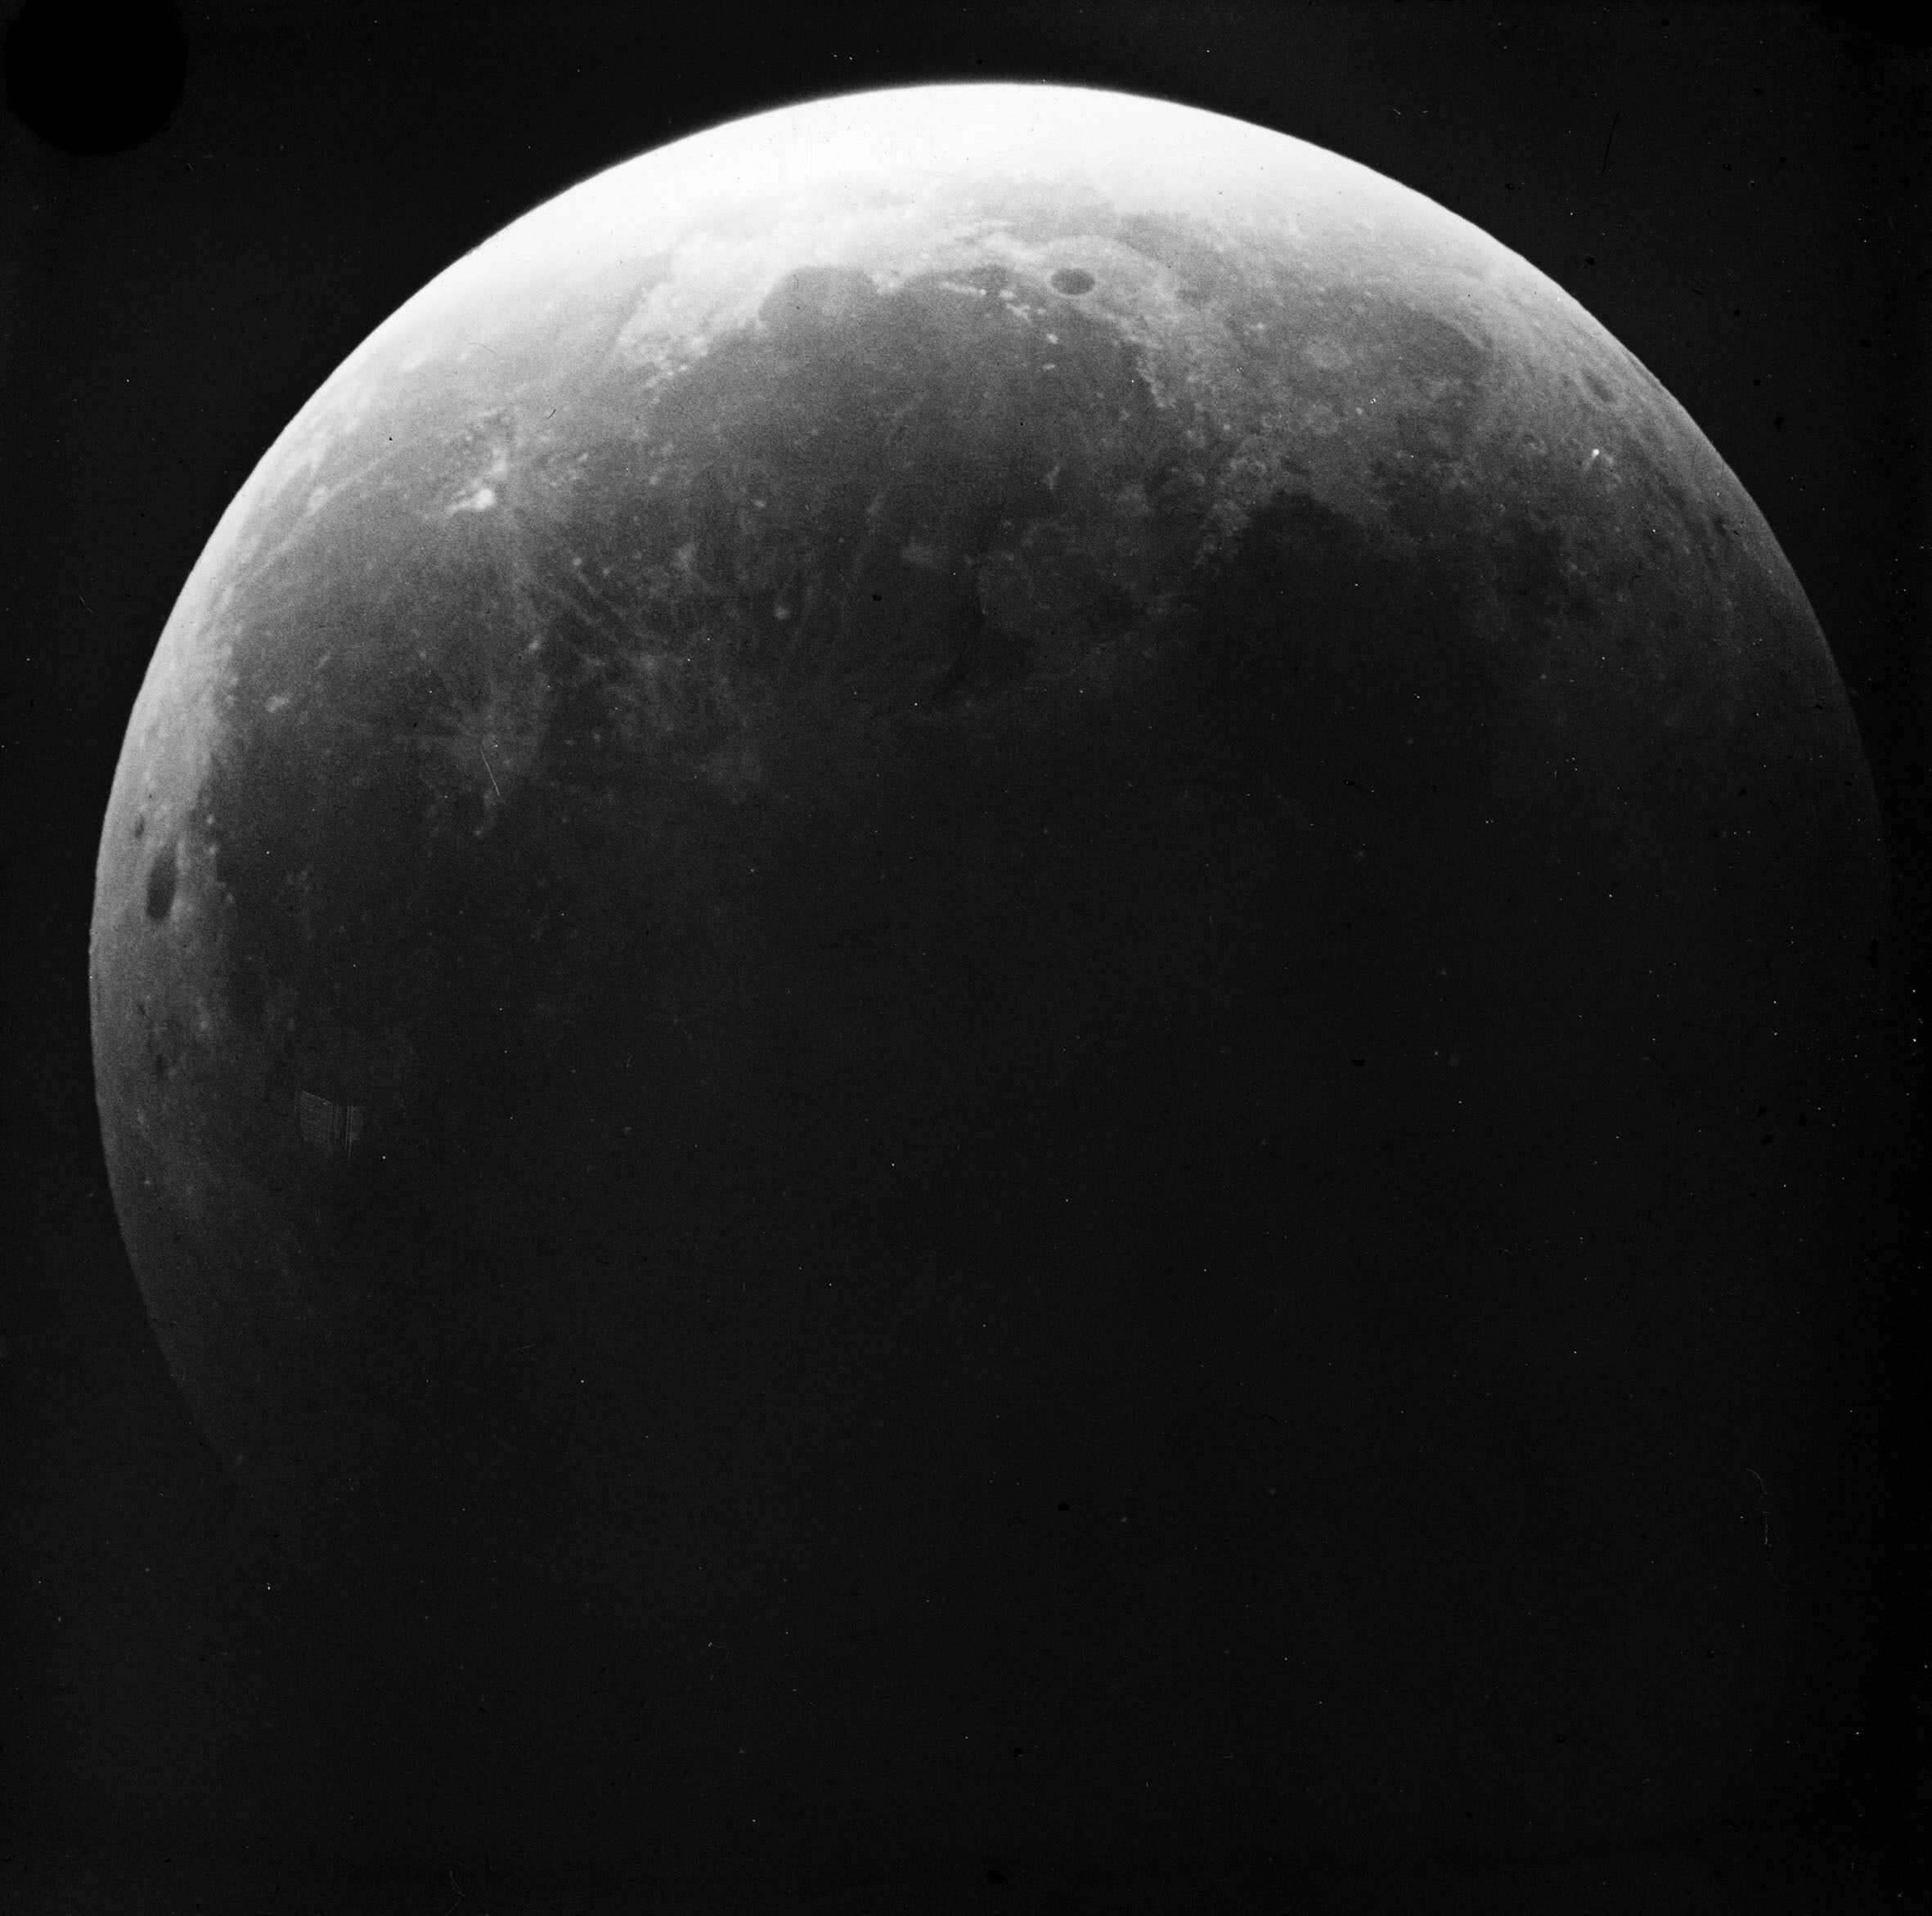 The Moon in near total lunar eclipse II, 1910